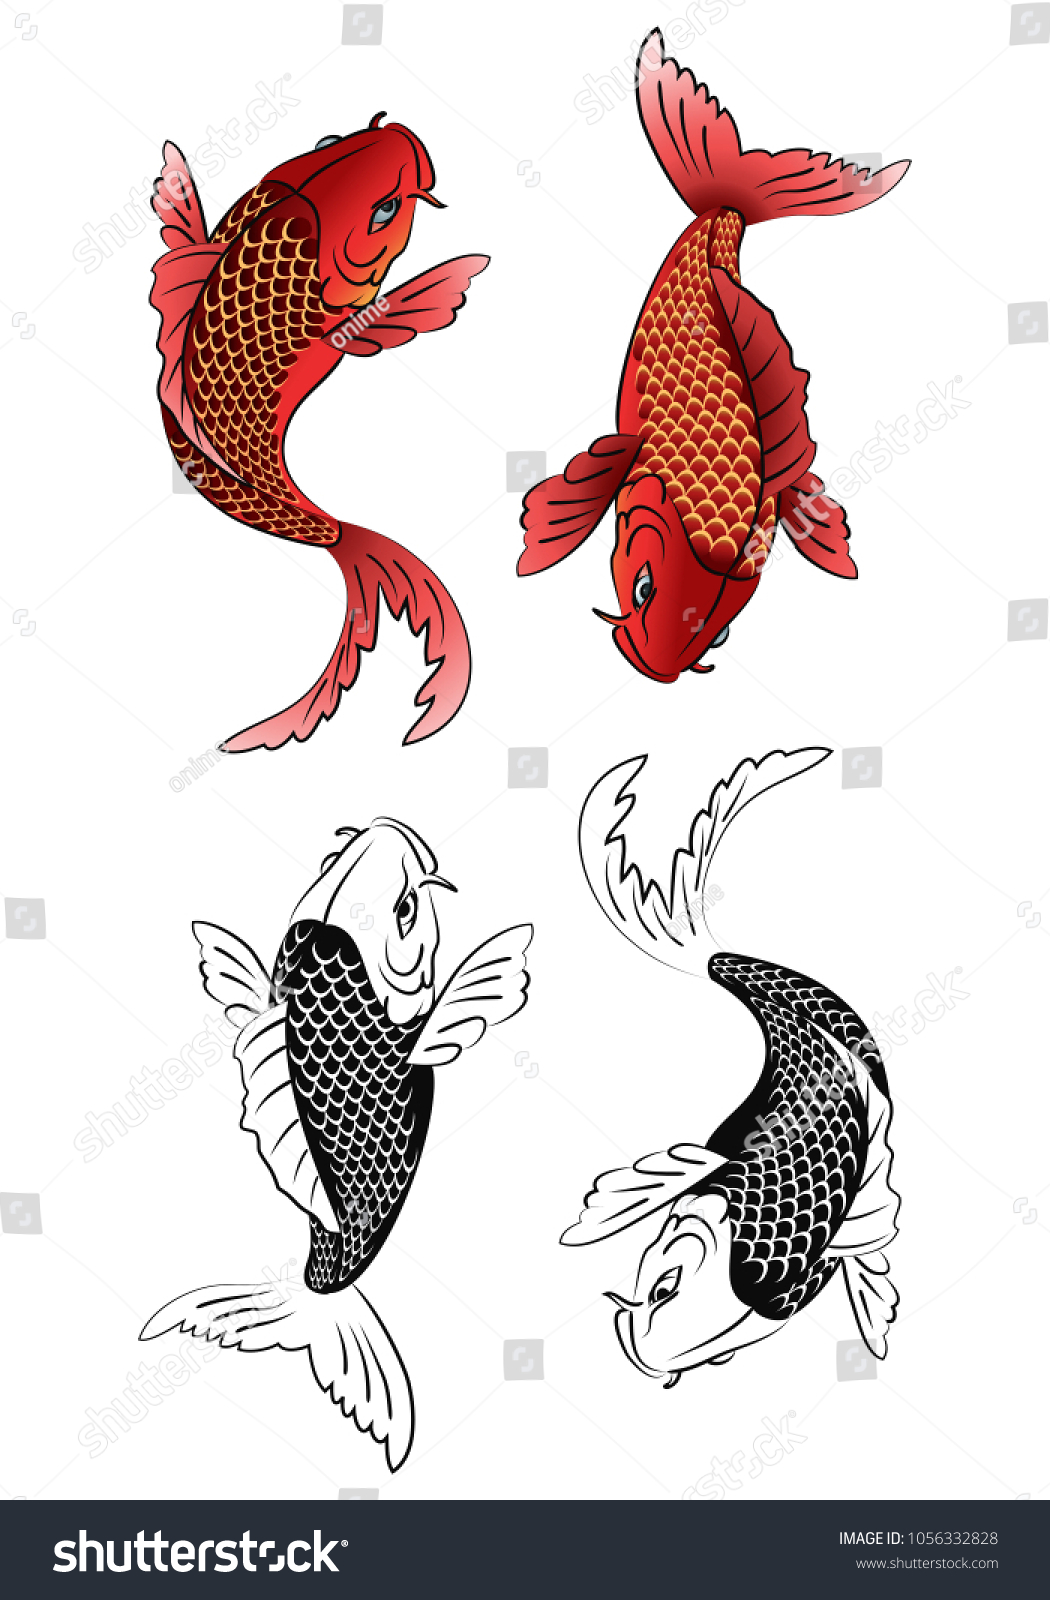 Illustration Two Koi Fish Tattoo Color Stock Vector 1056332828 ...